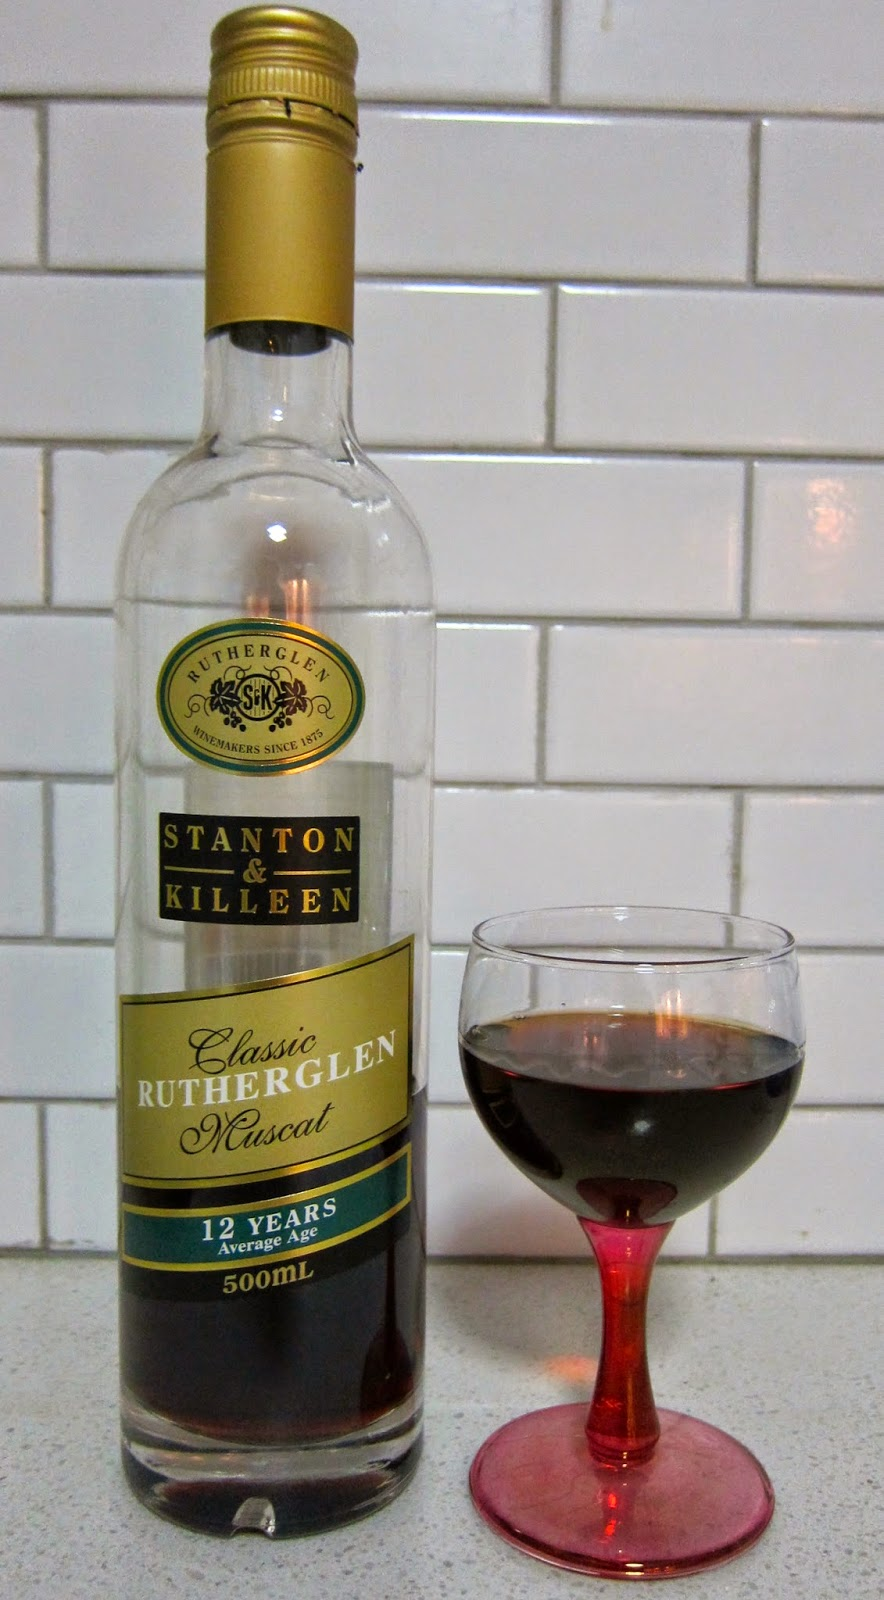 stanton and killeen rutherglen muscat